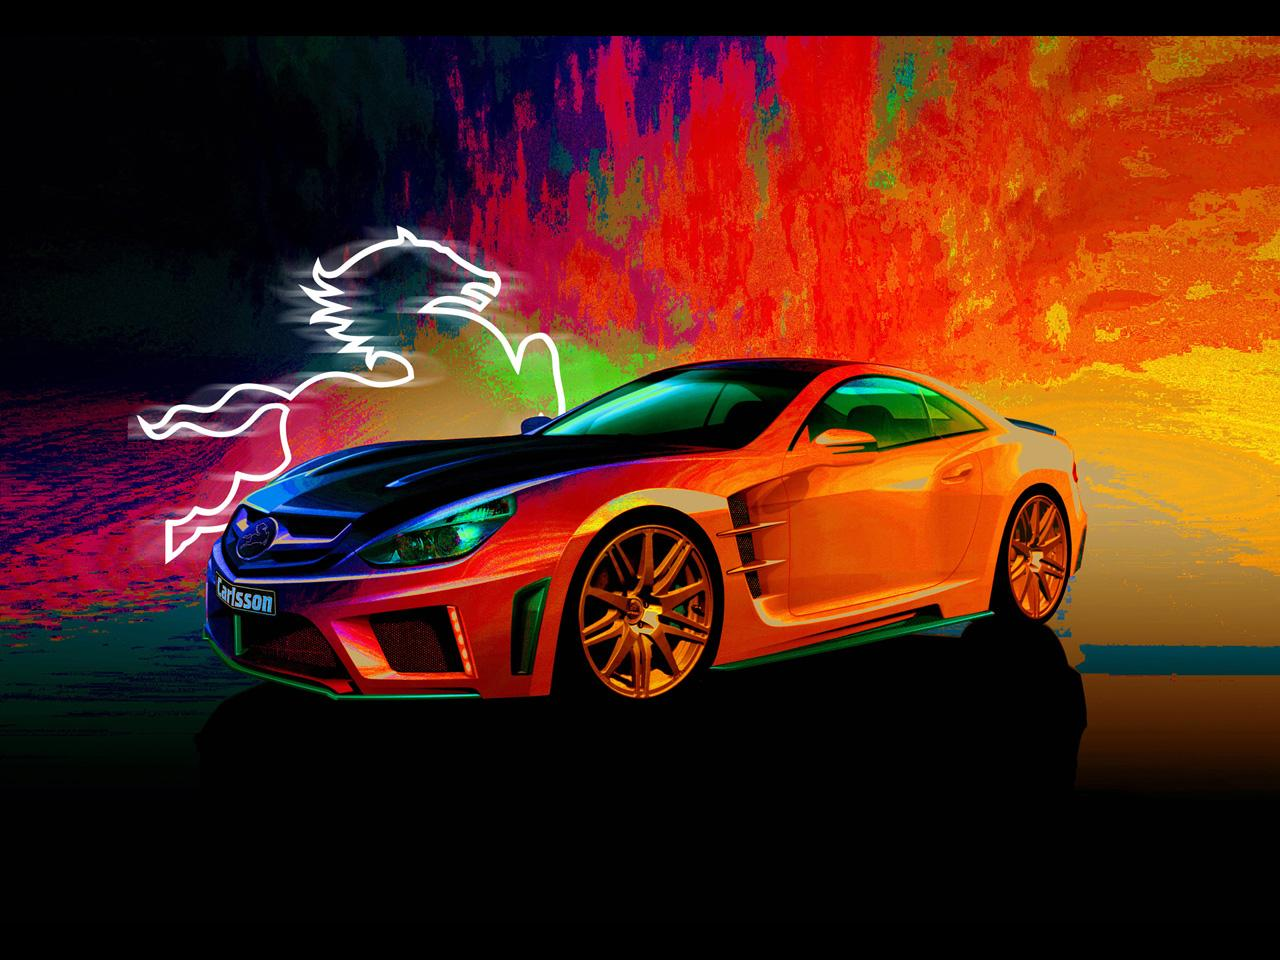 33 Strikingly Awesome Car Wallpapers To Revamp Your